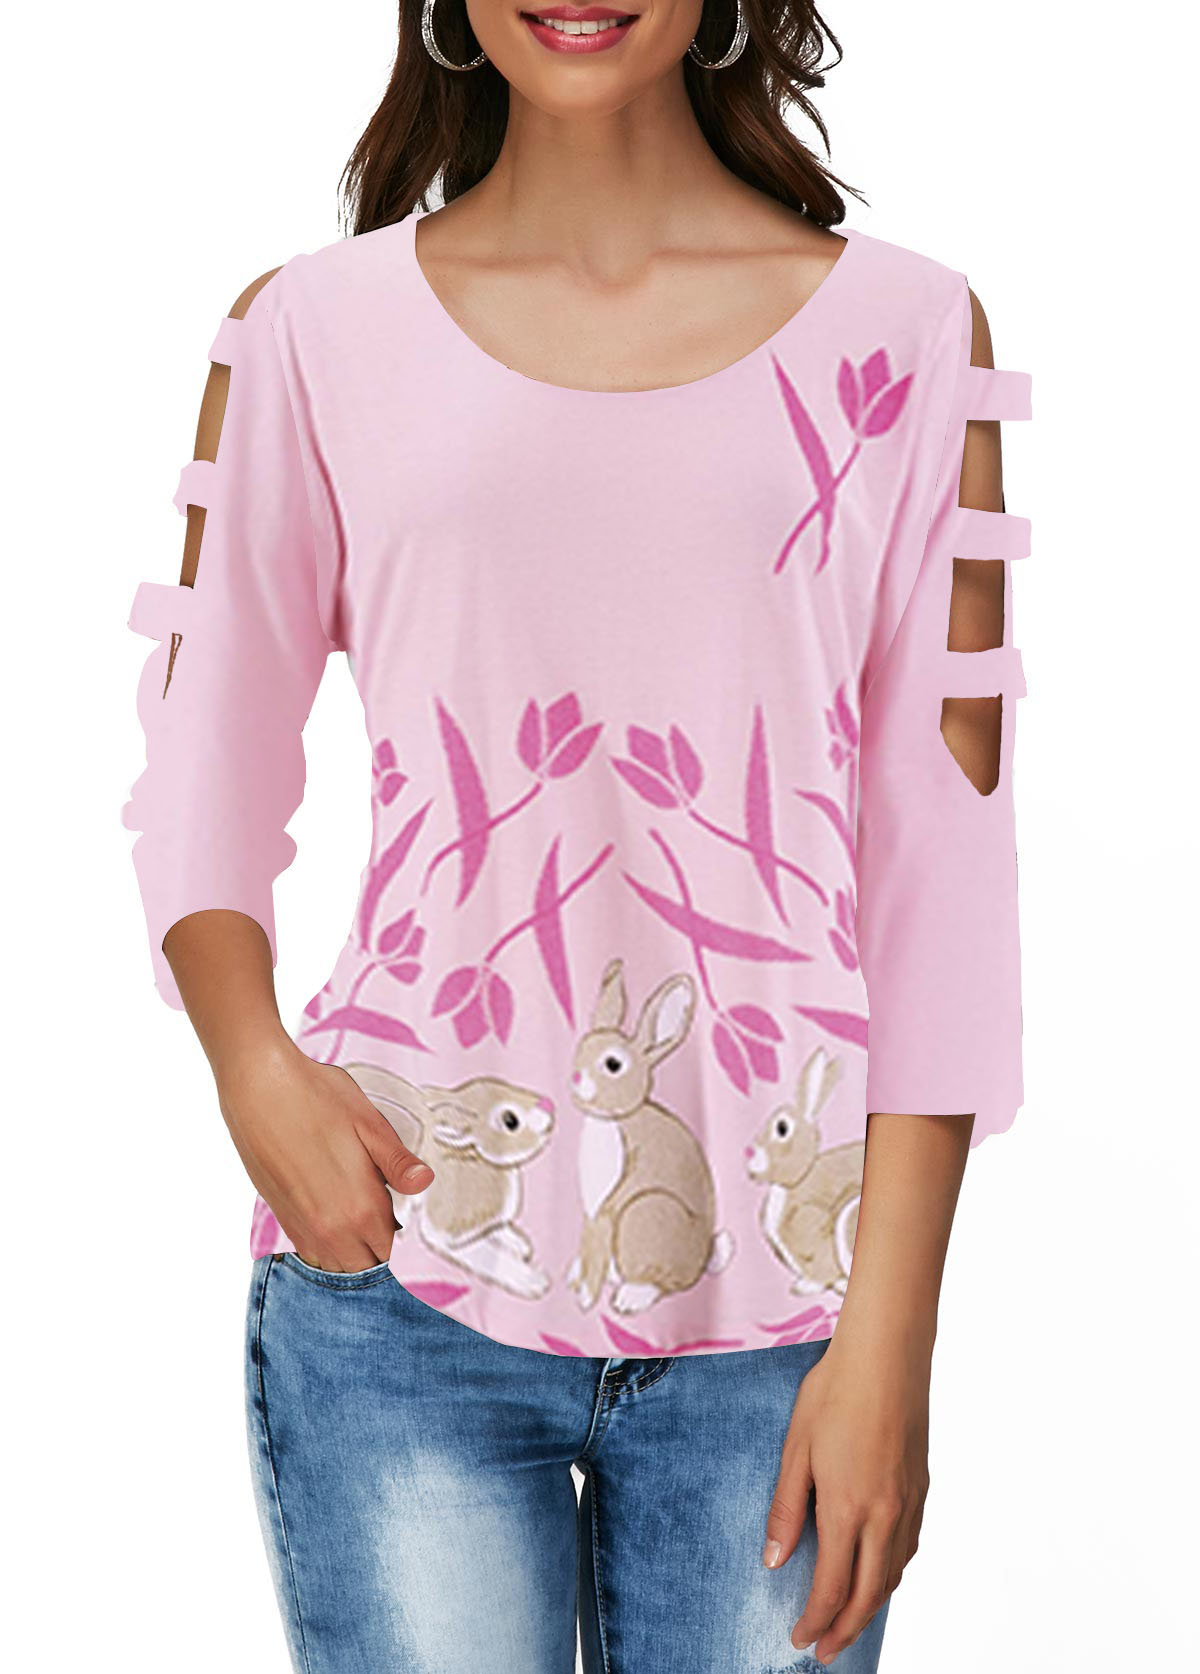 Cutout Sleeve Easter Rabbit Print Light Pink T Shirt